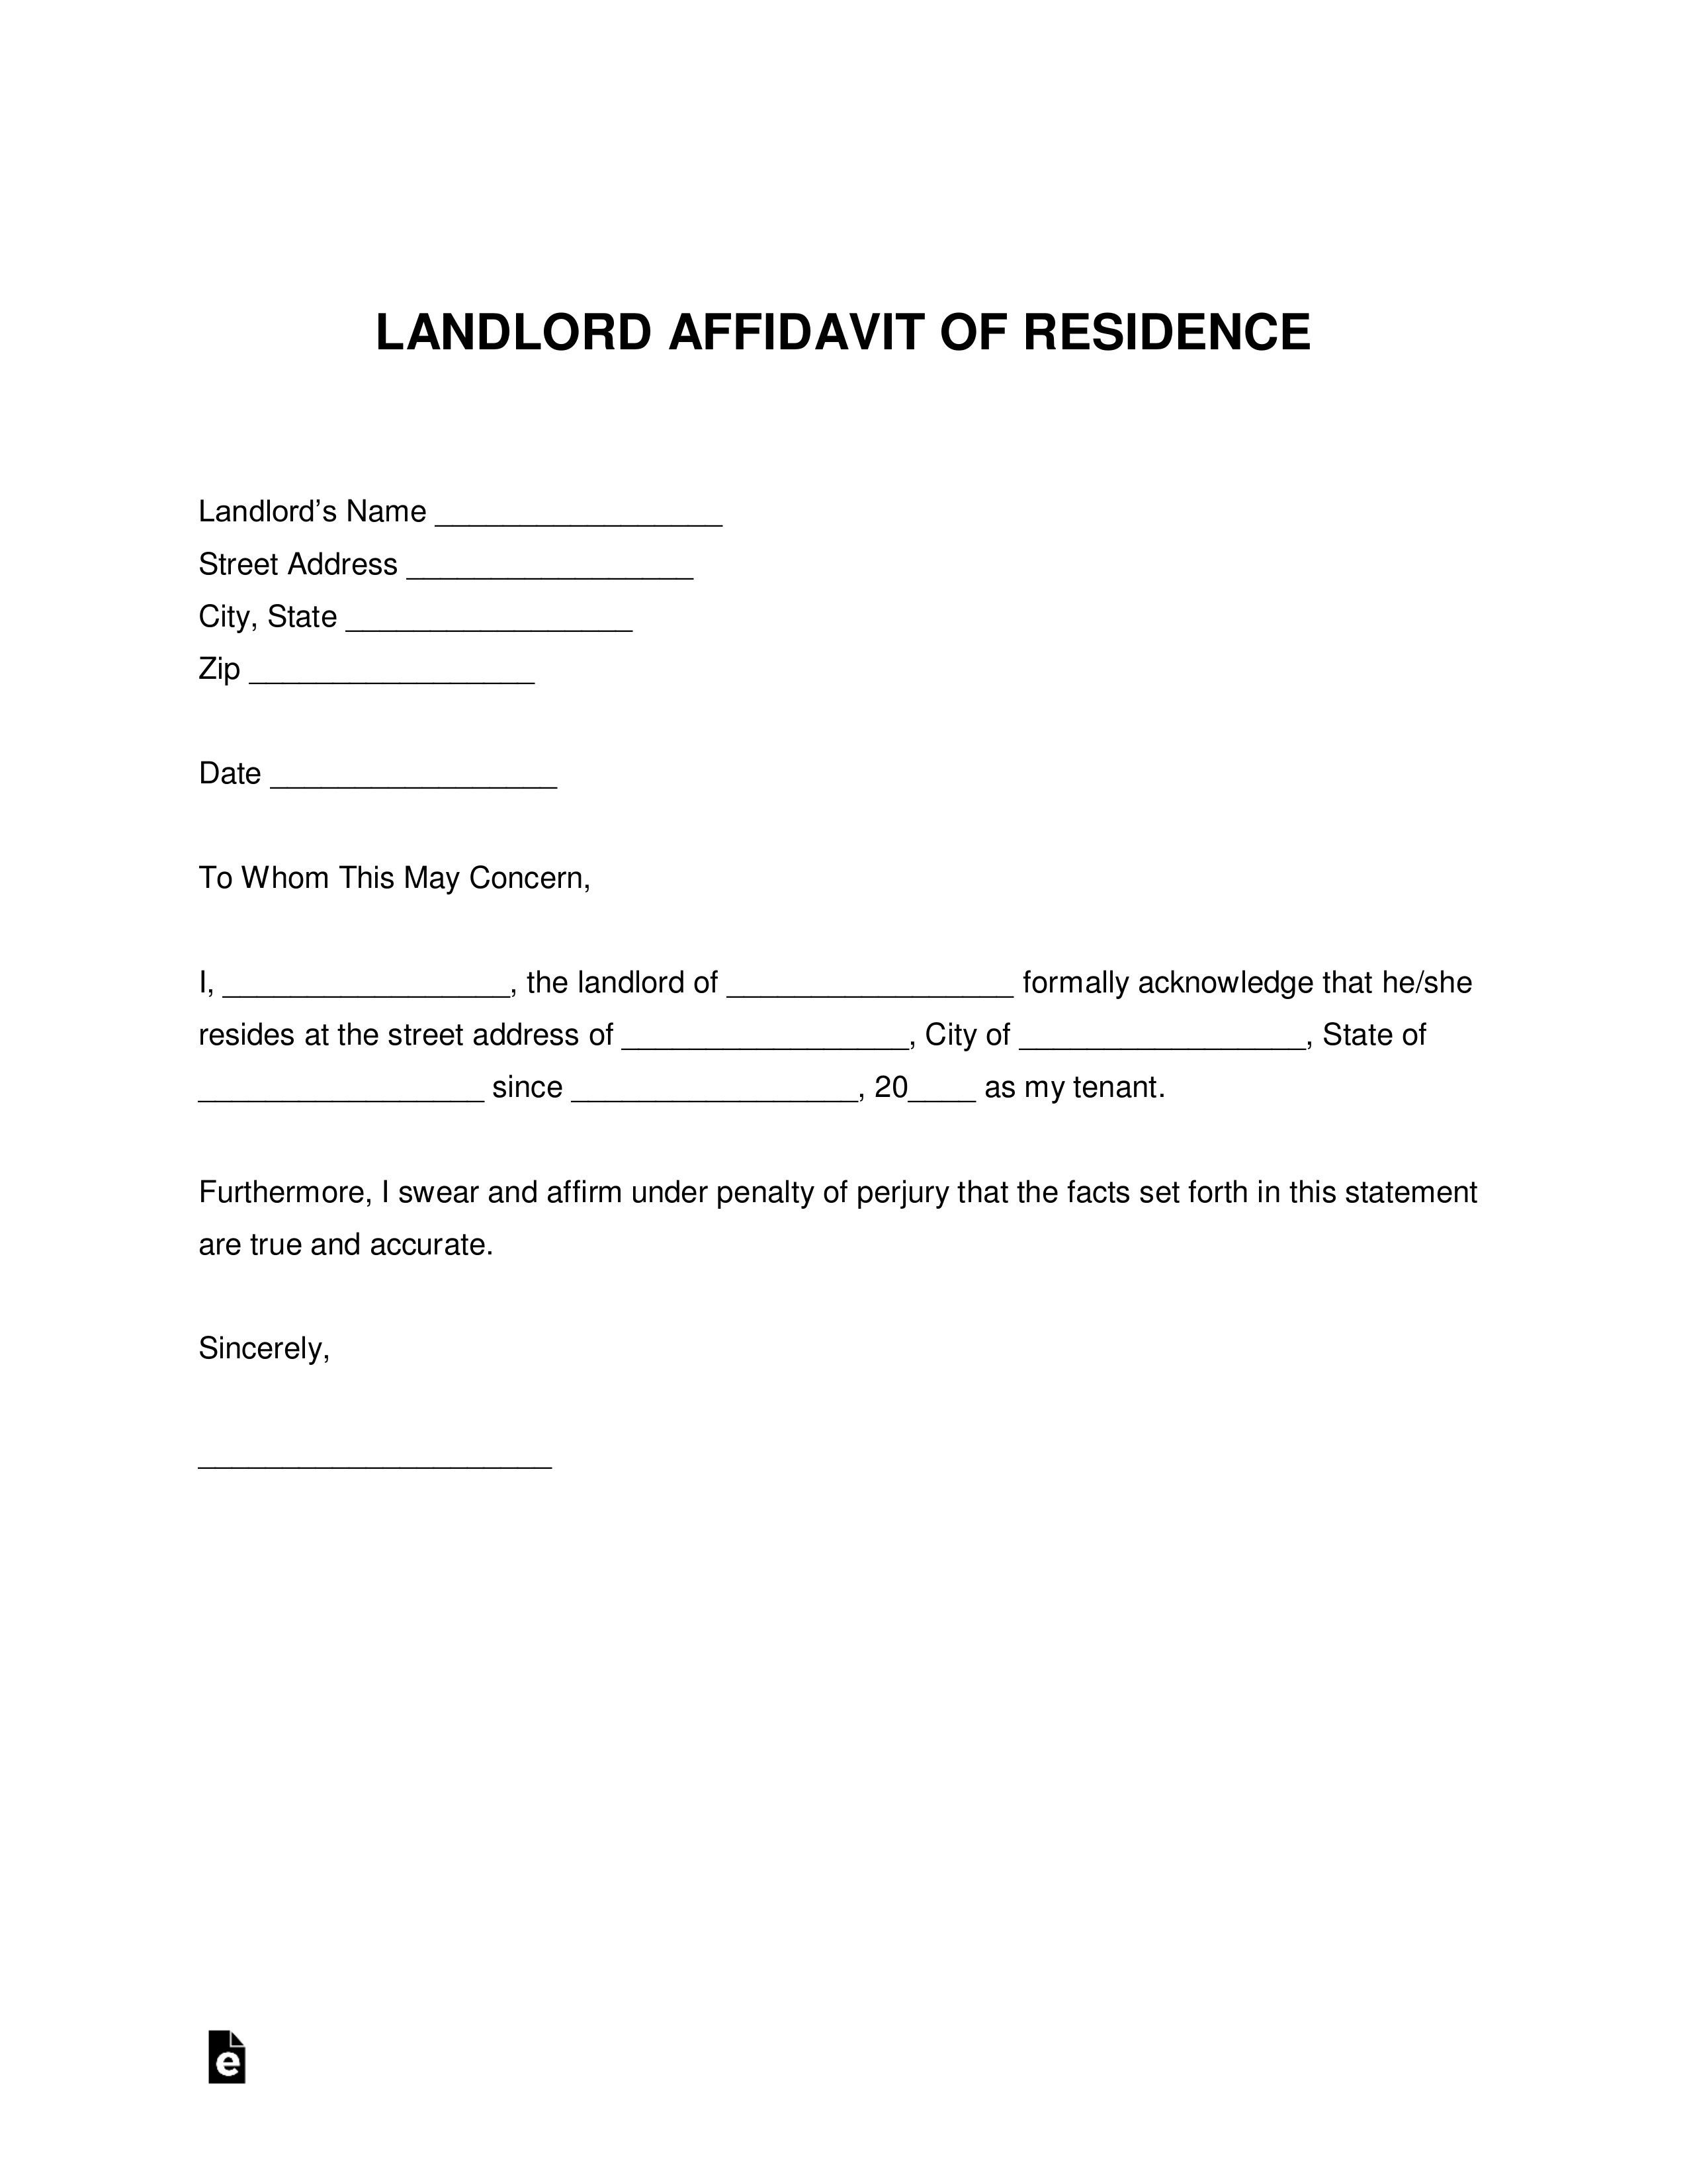 Landlord Letter Proof Of Residency from www.addictionary.org